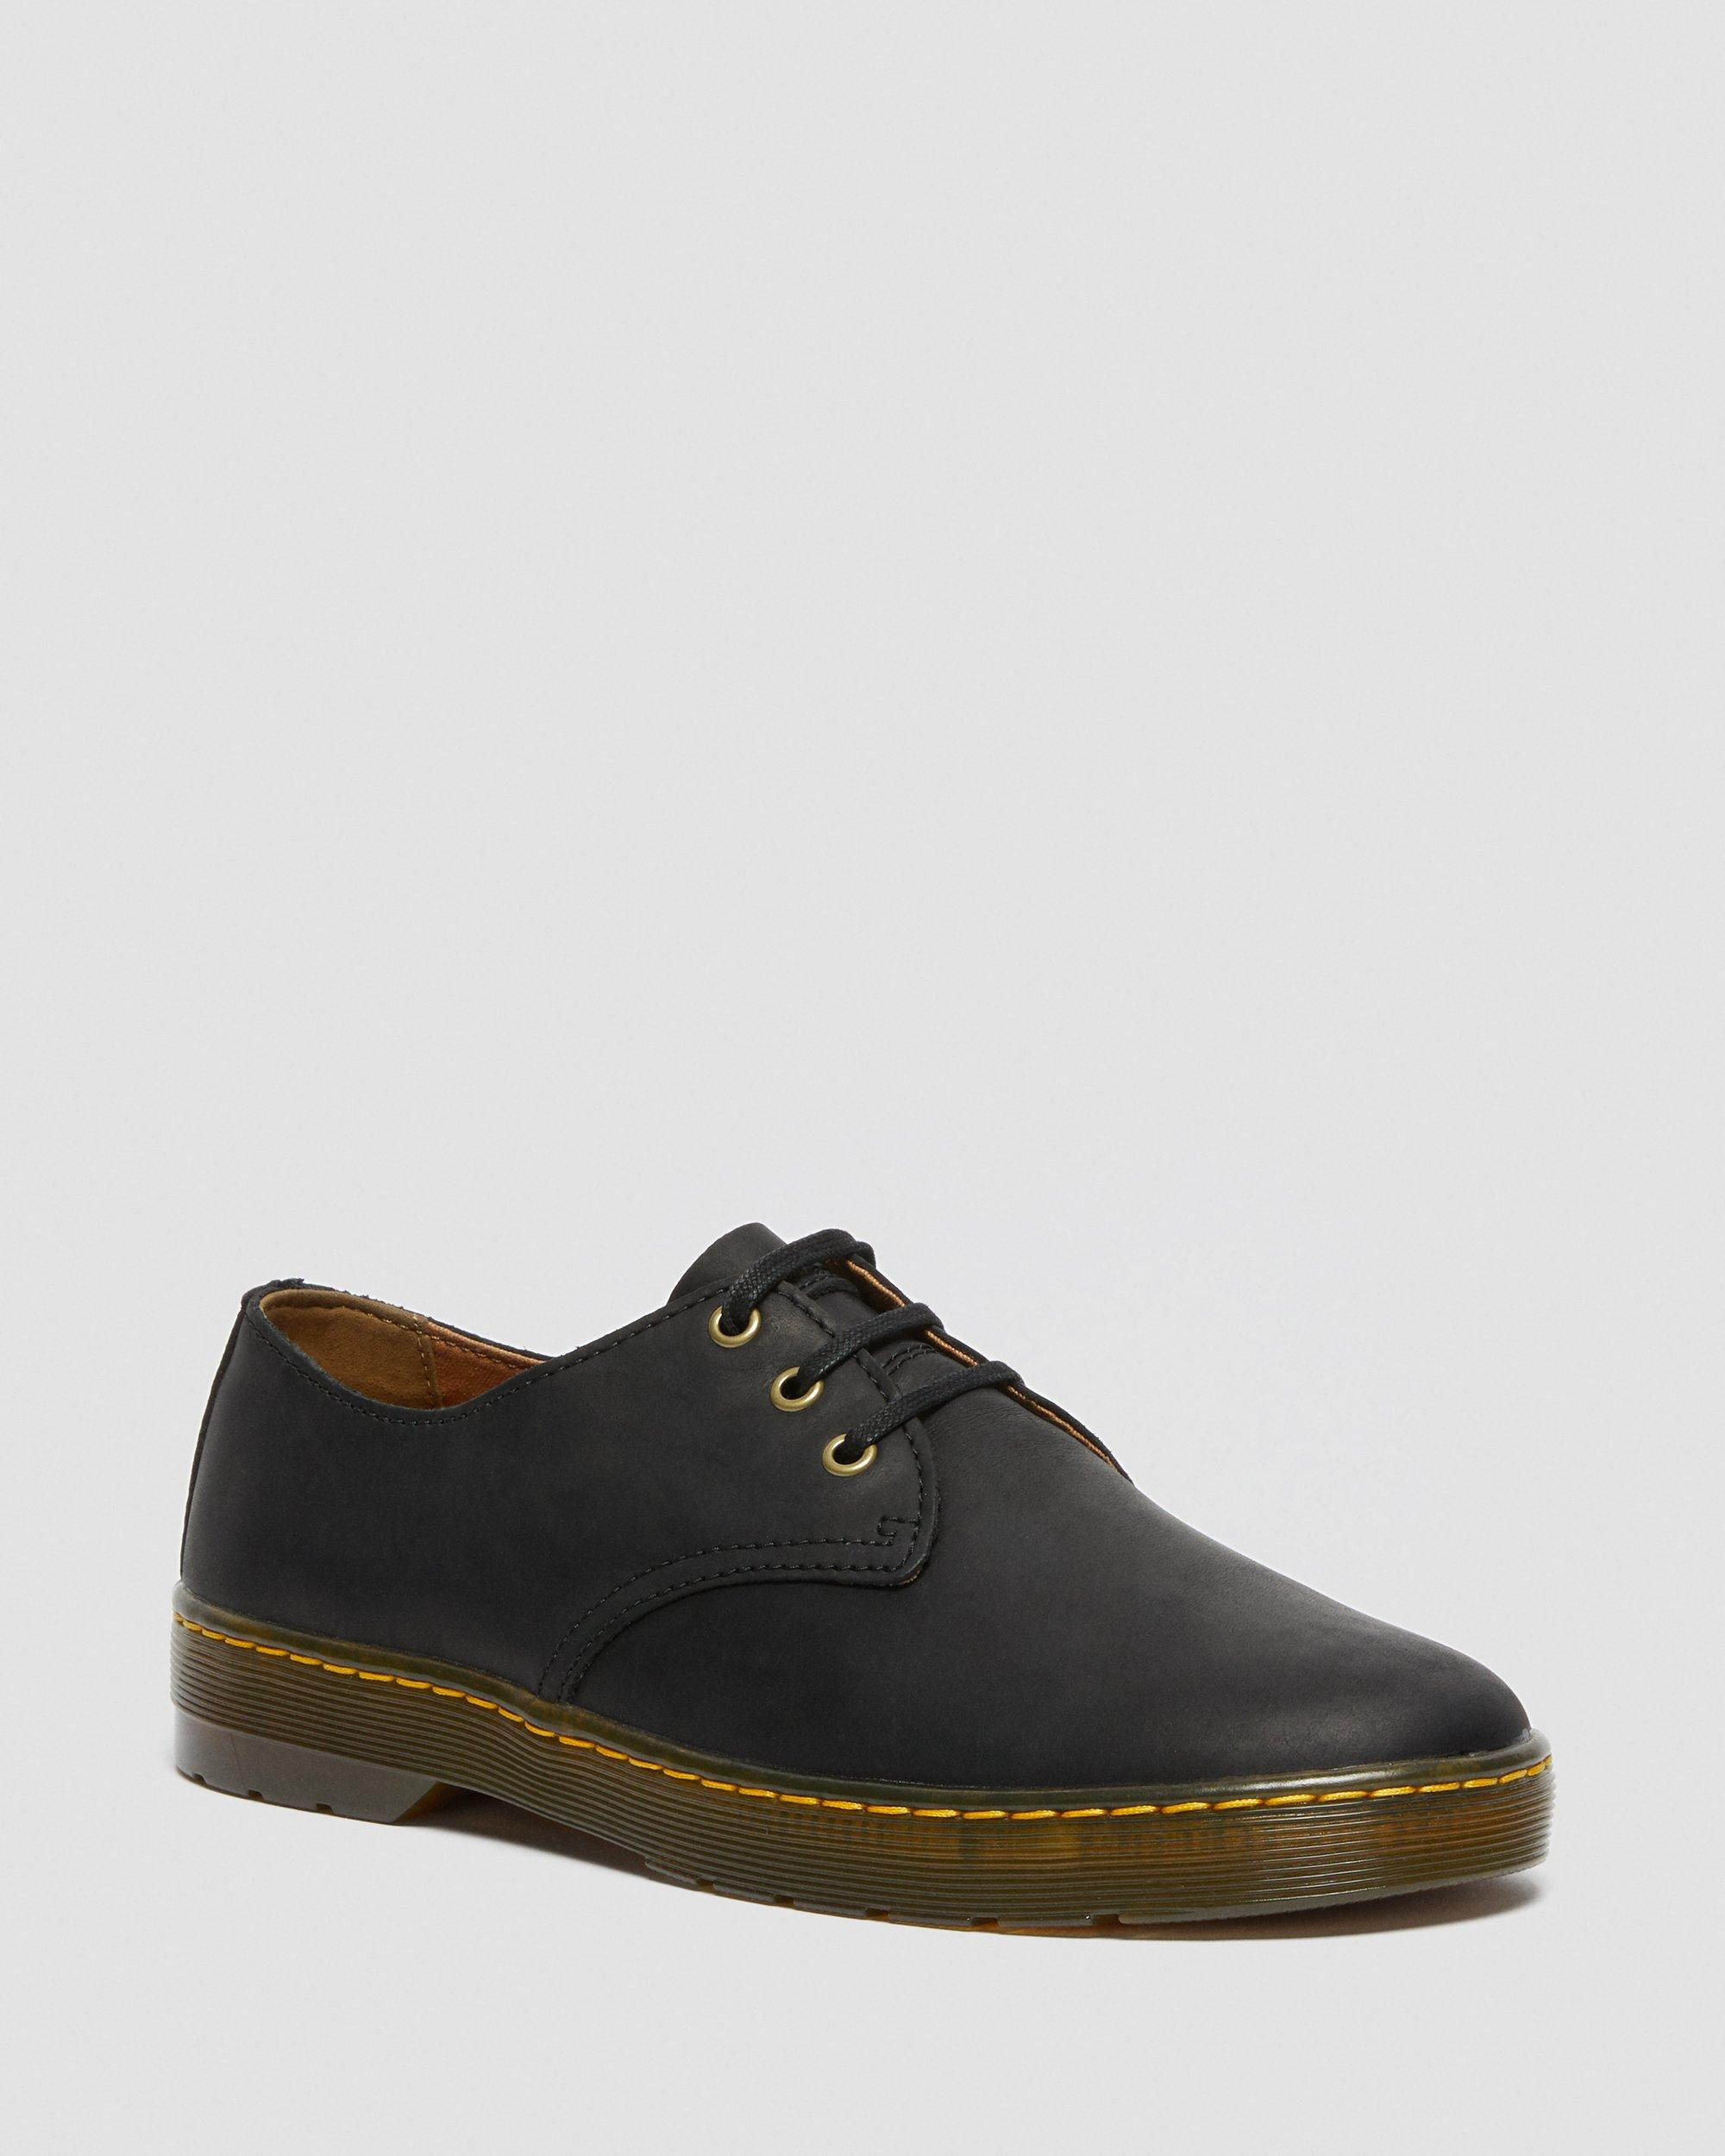 Dr. Martens 1461 3 Eye Smooth Oxford